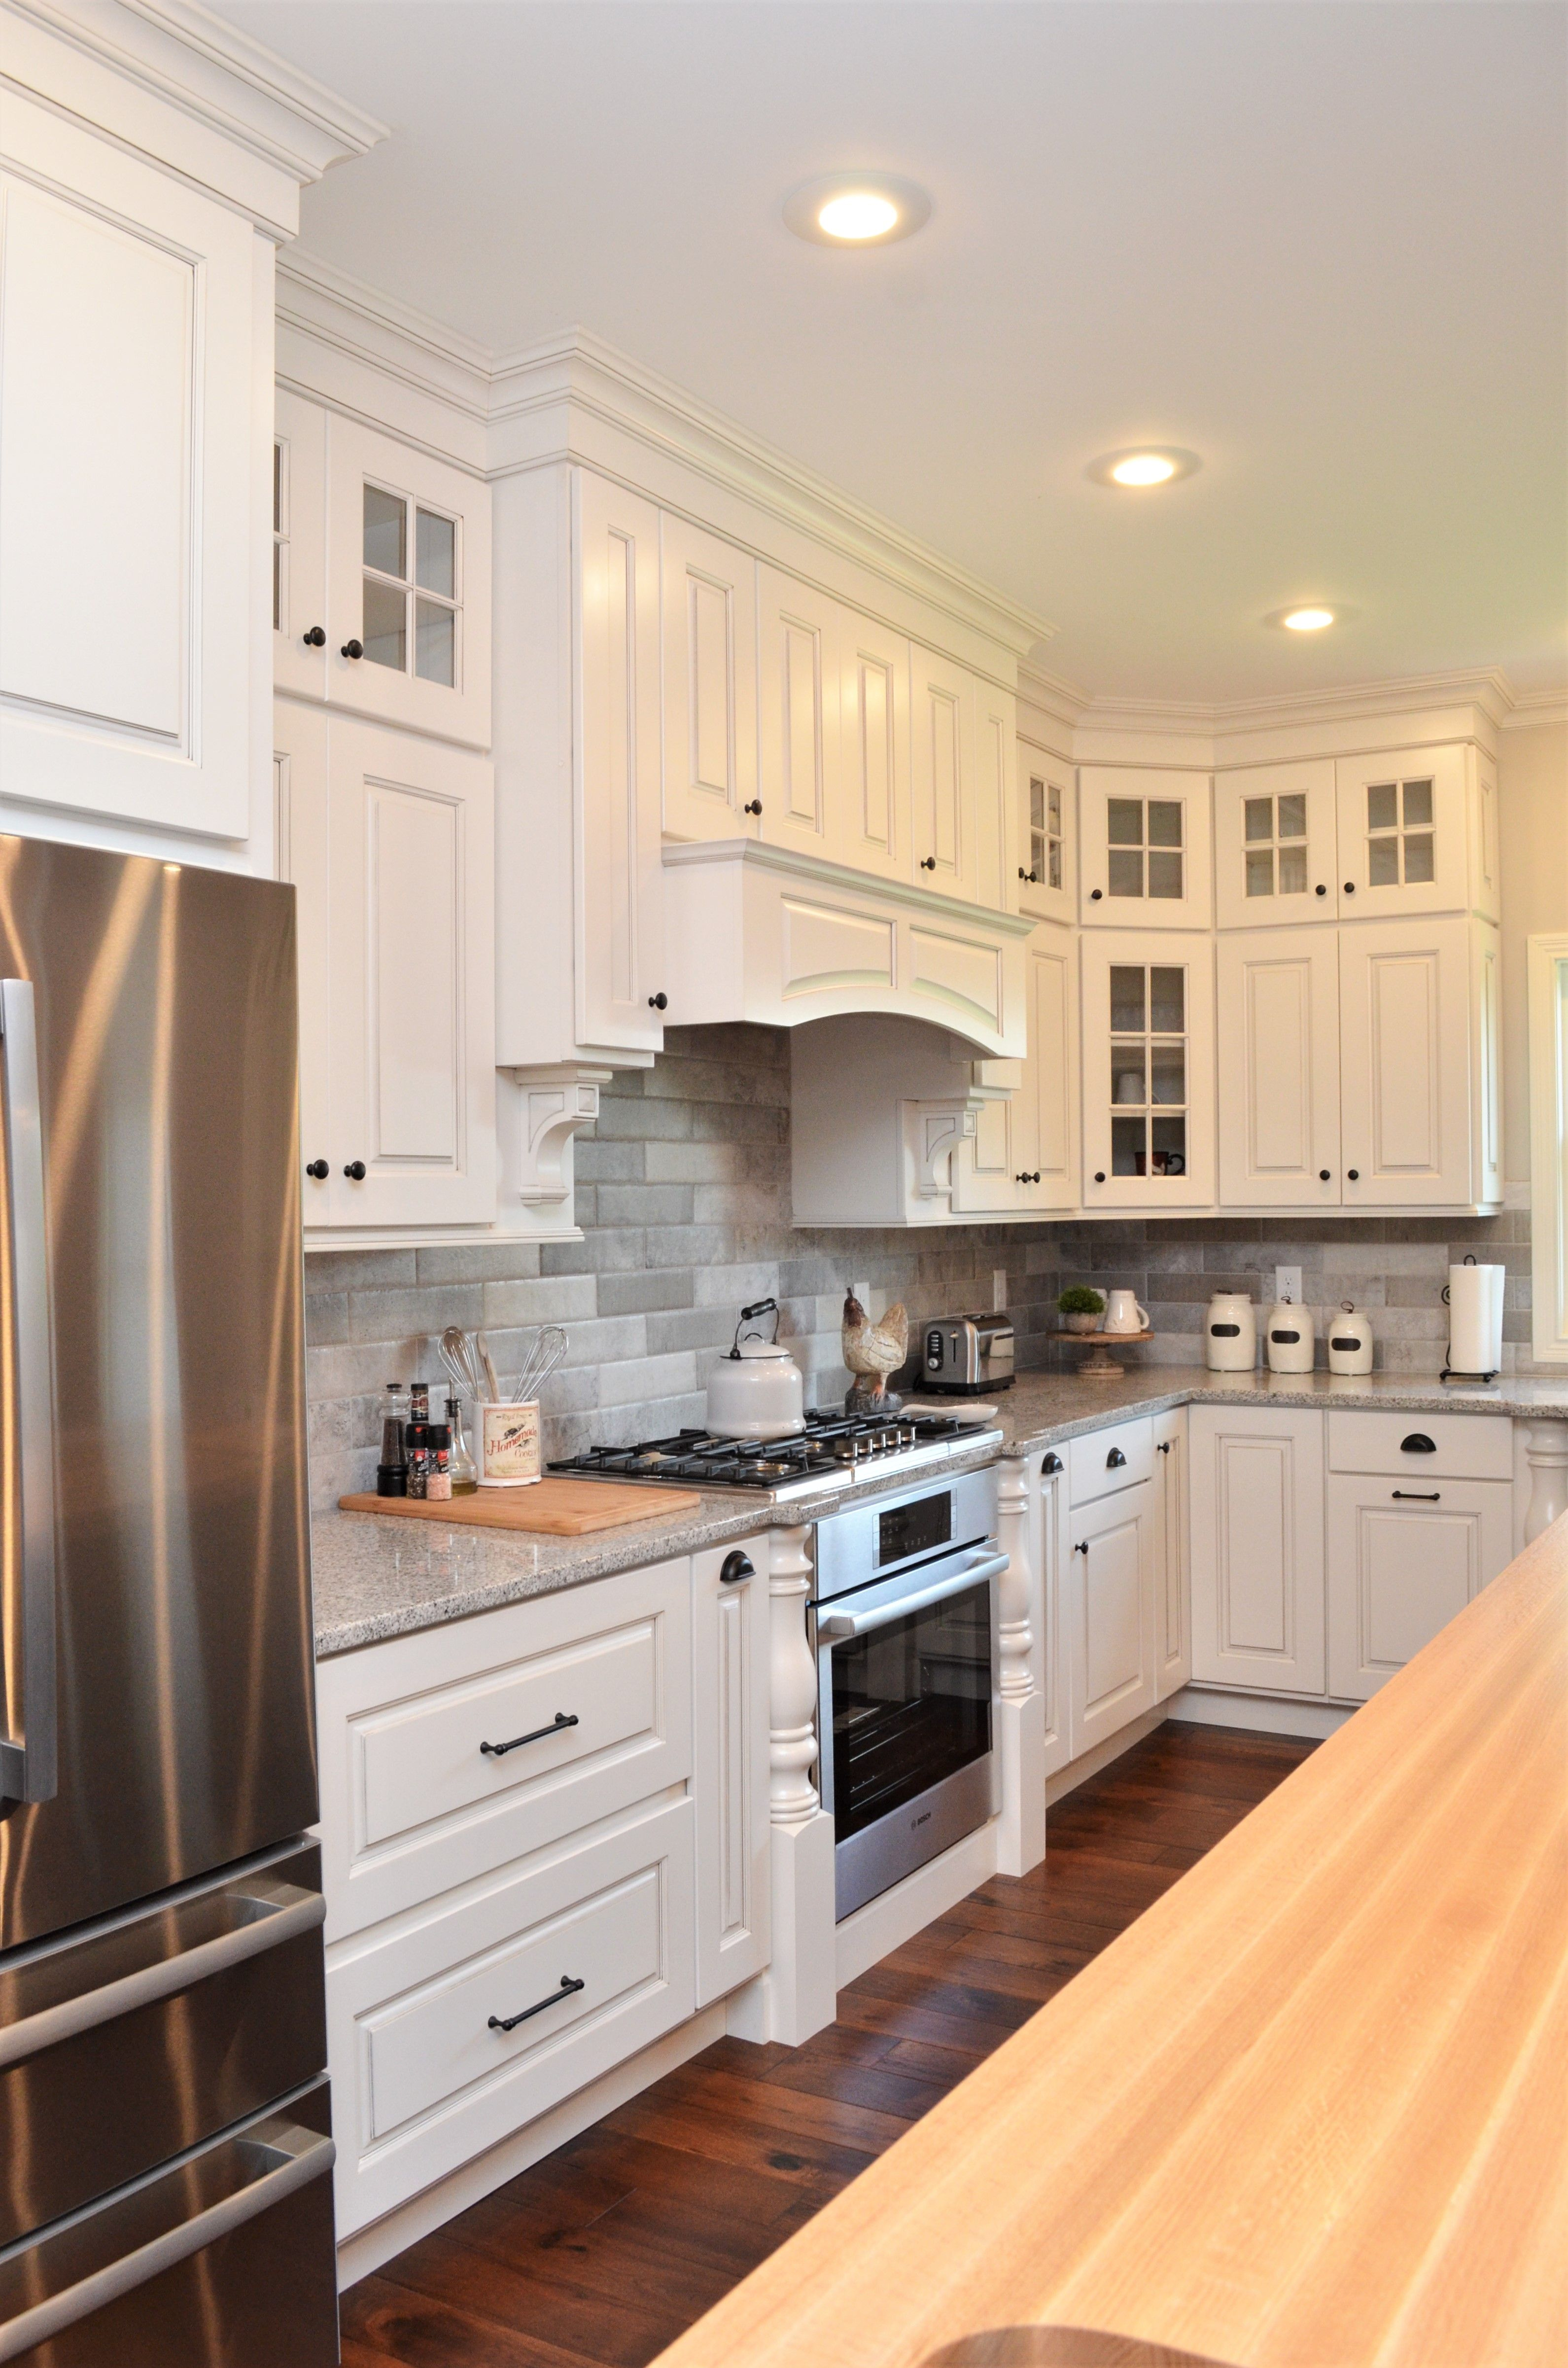 Haas Cabinetry Wood Species Maple Cabinet Finish Bistro Door Style Dover Island Maple Kitchen Cabinet Styles Contemporary Kitchen Cabinets Kitchen Cabinets